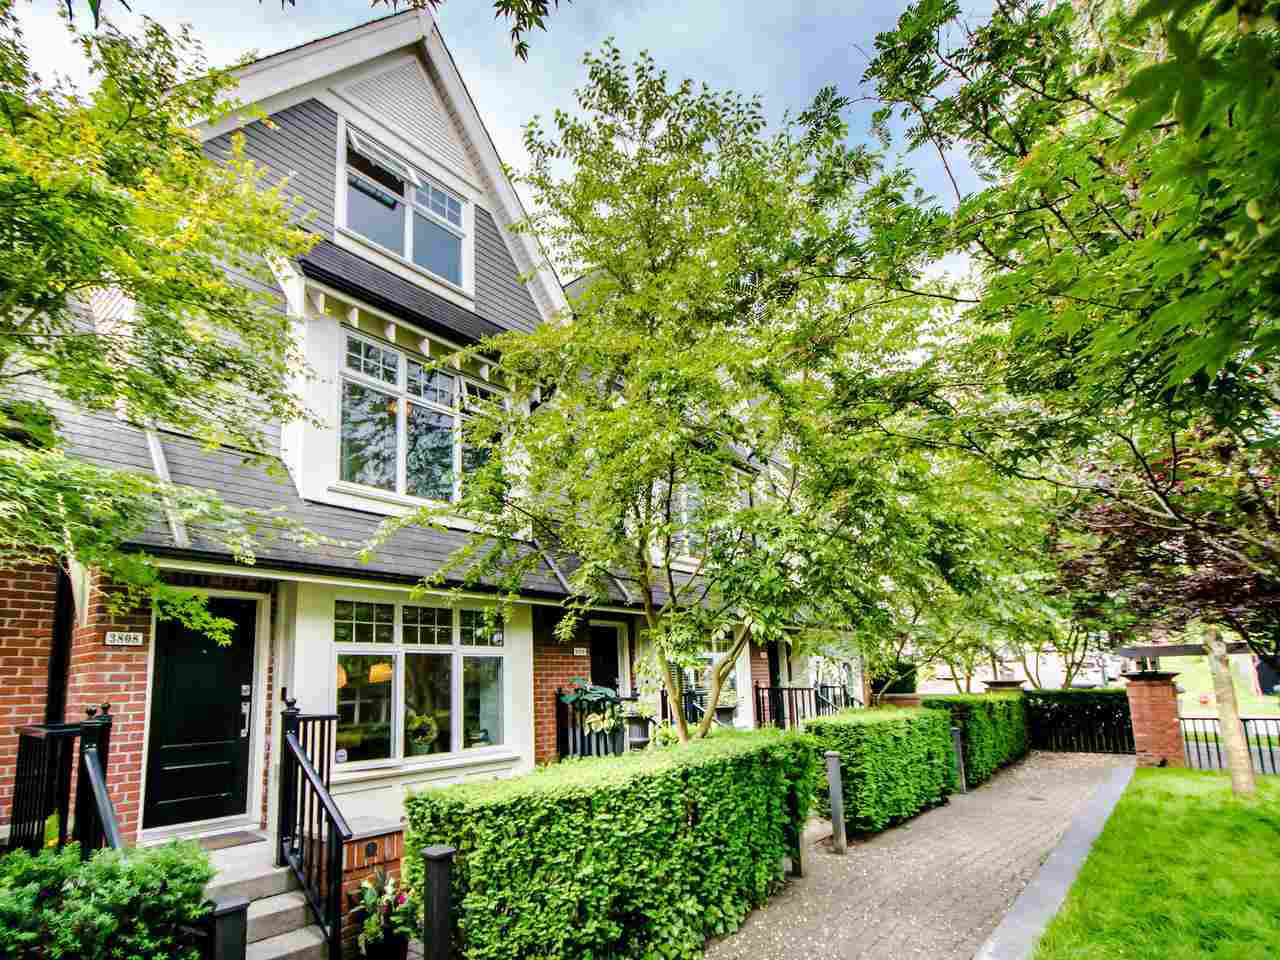 """Main Photo: 3808 WELWYN Street in Vancouver: Victoria VE Townhouse for sale in """"Stories"""" (Vancouver East)  : MLS®# R2467996"""